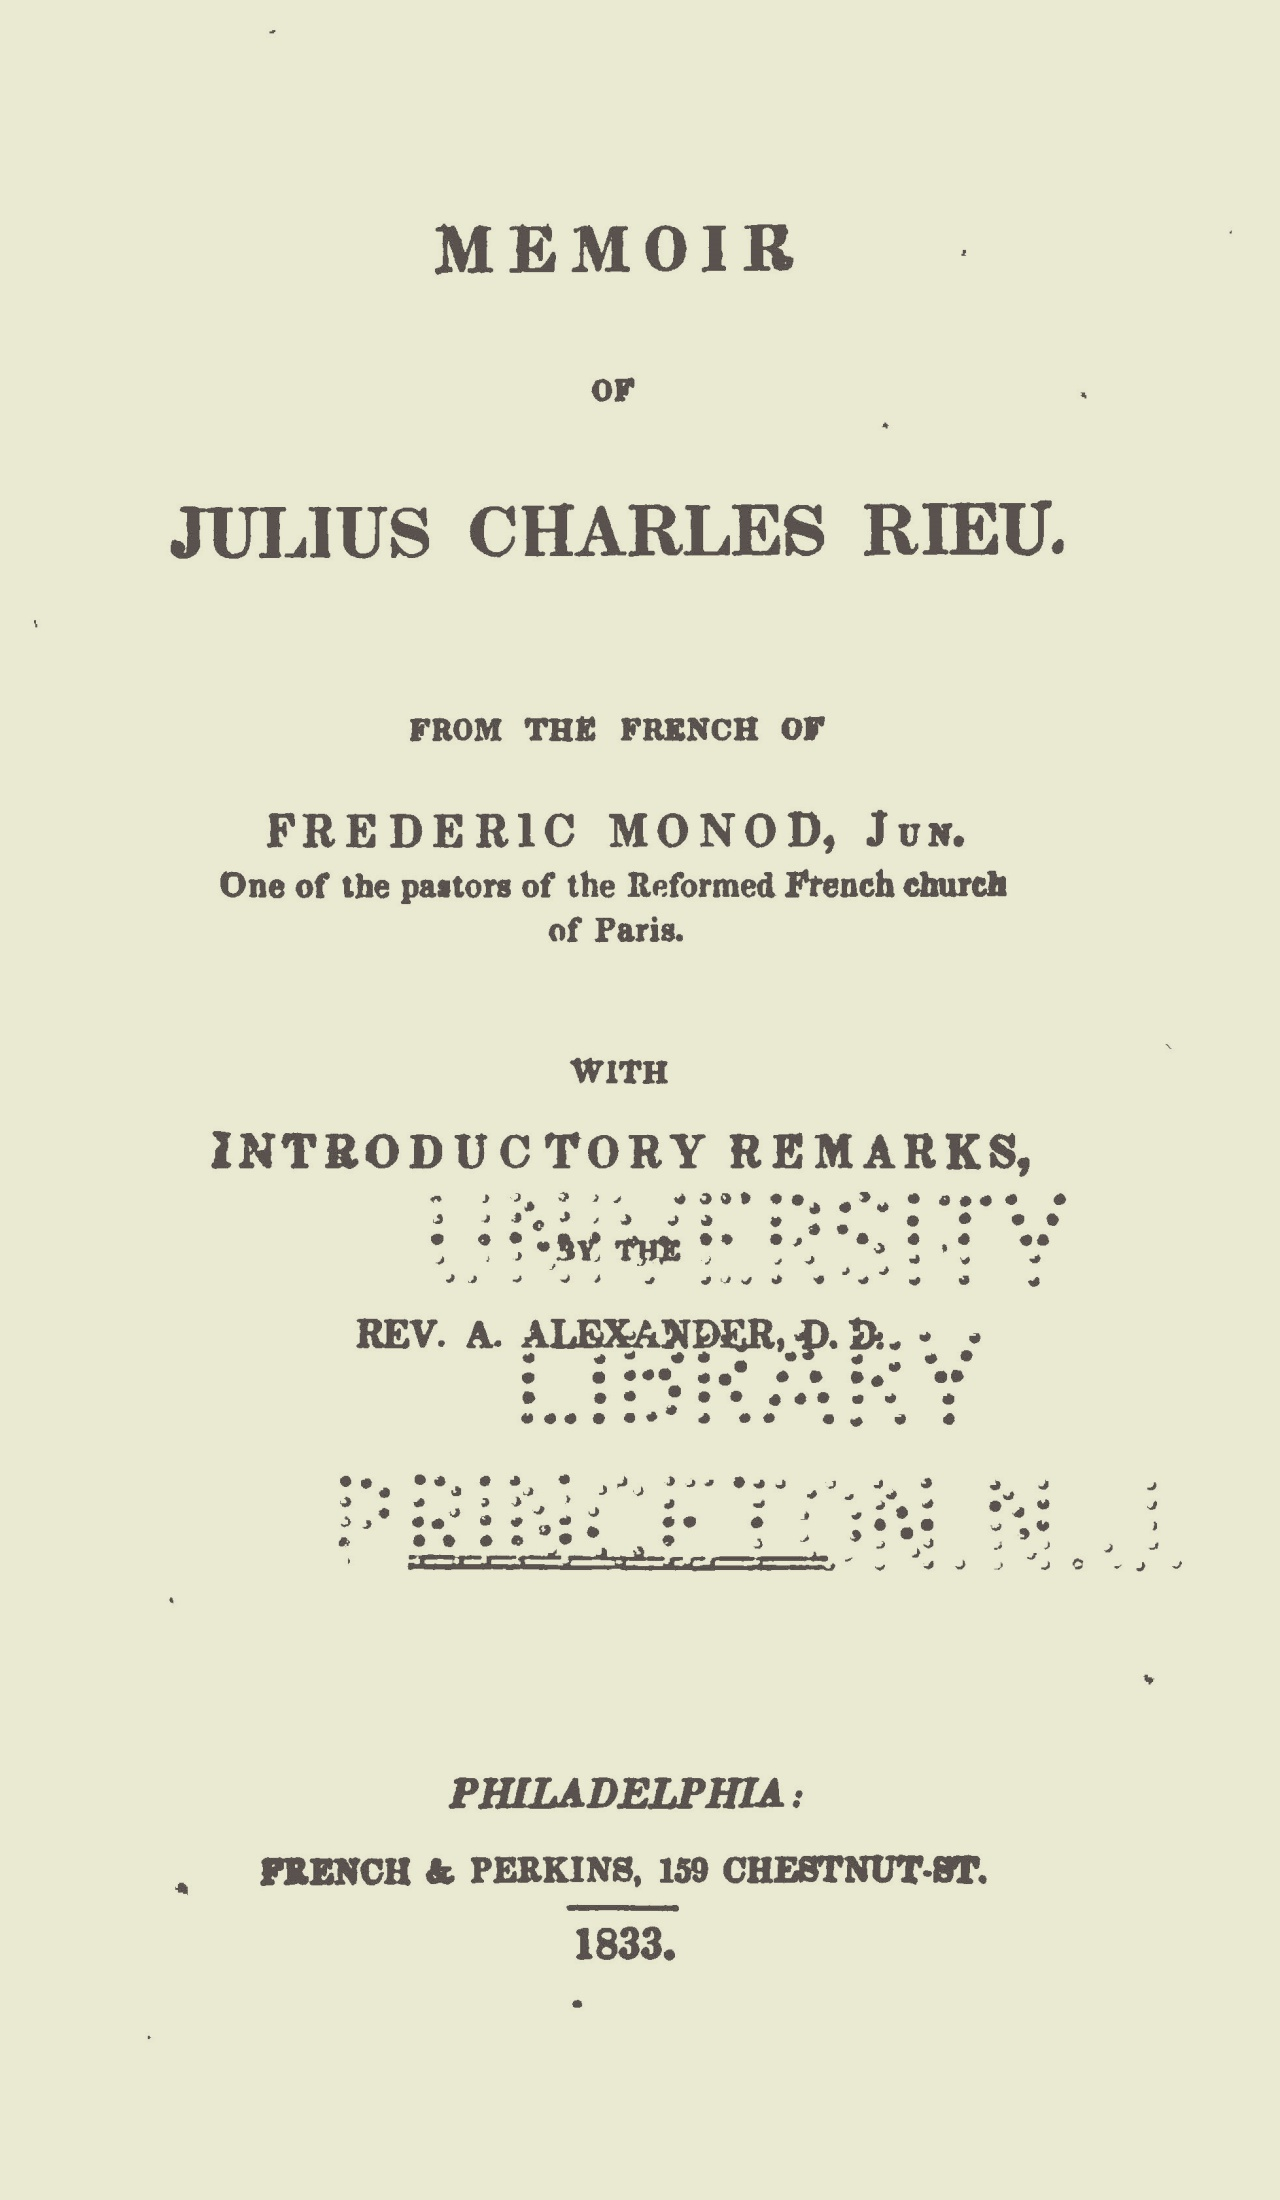 Alexander, Archibald, Introductory Remarks to Memoir of Julius Charles Rieu Title Page.jpg